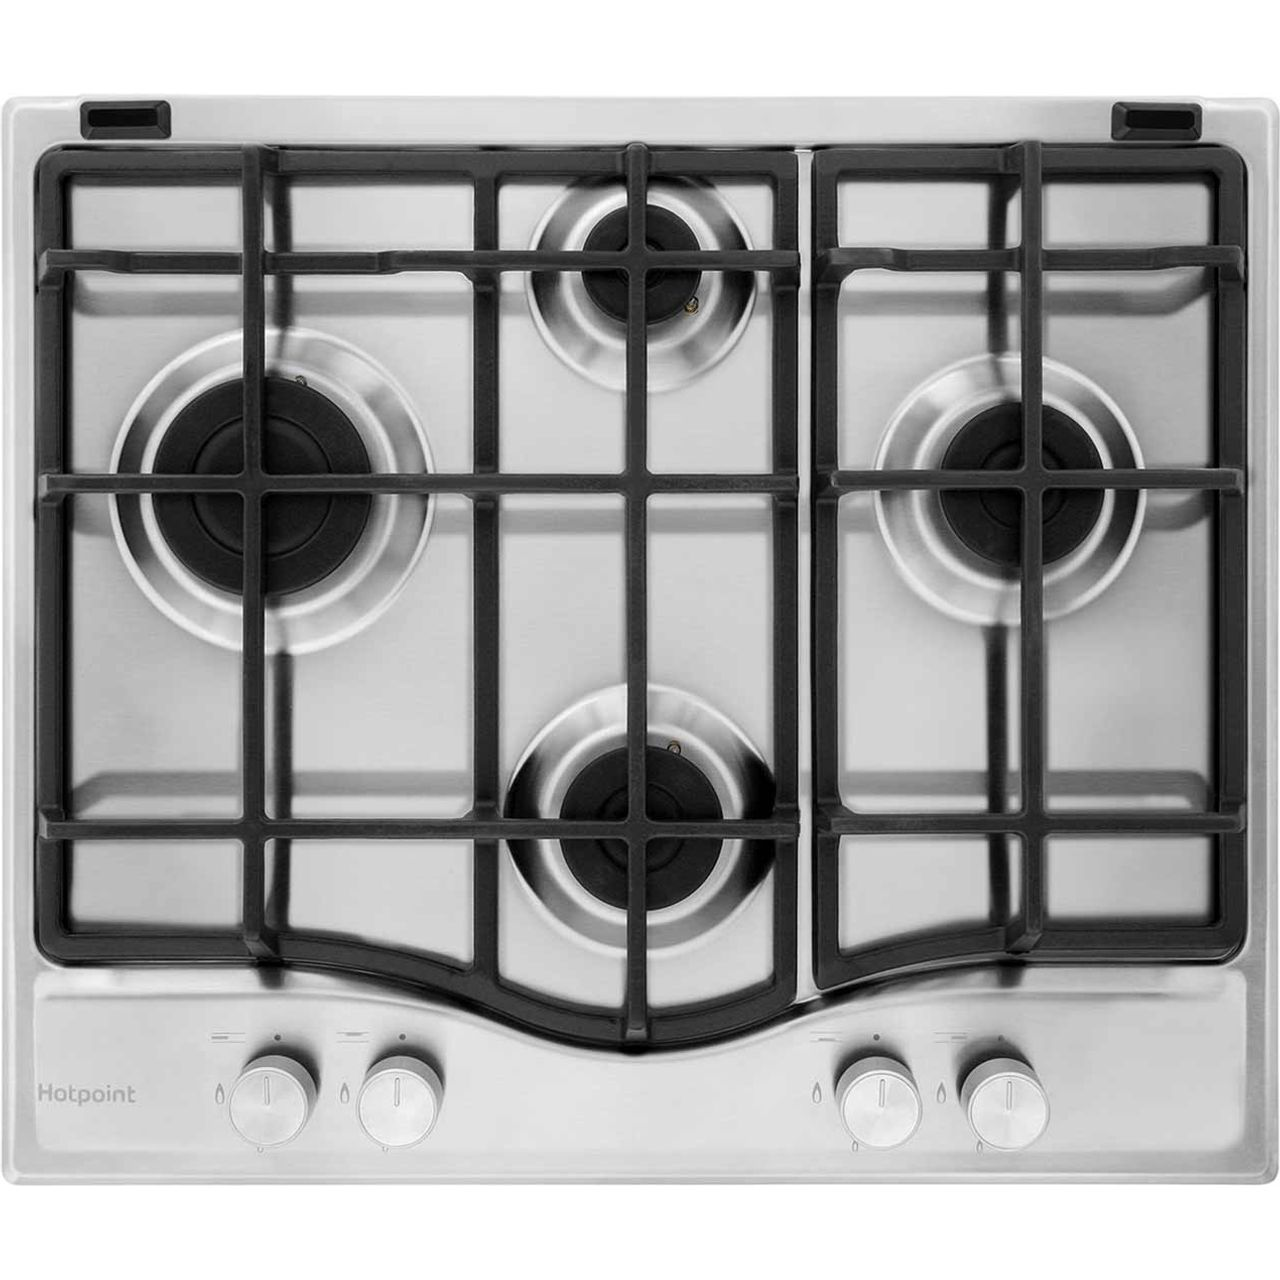 Hotpoint Ultima PCN641IXH Integrated Gas Hob in Stainless Steel